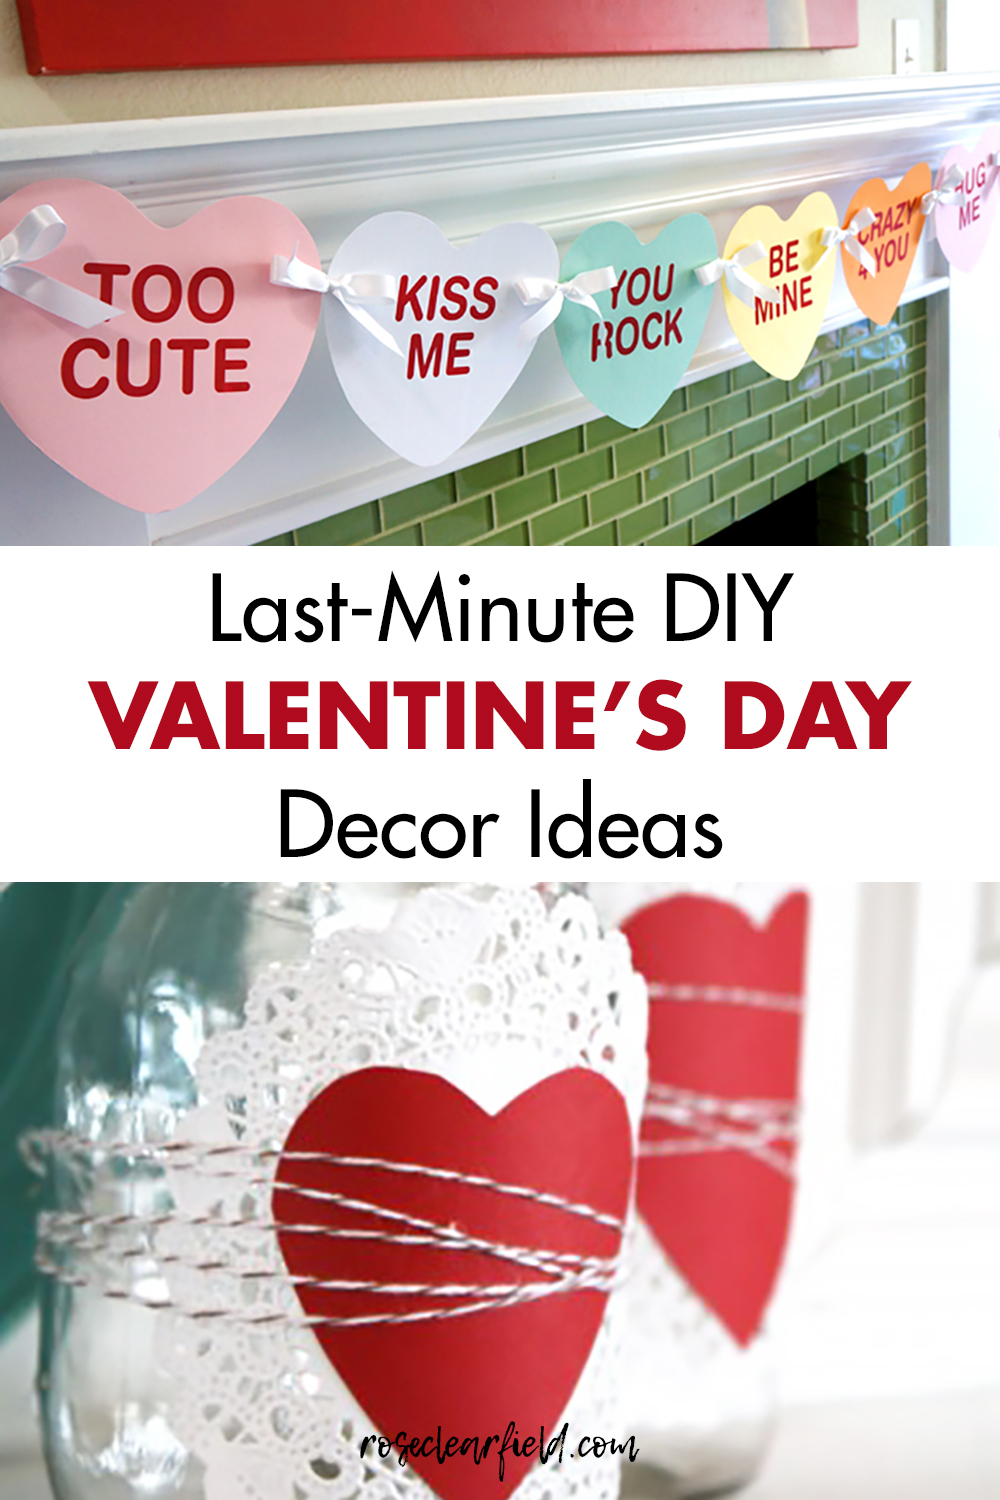 Last Minute Diy Valentine S Day Decor Ideas Rose Clearfield